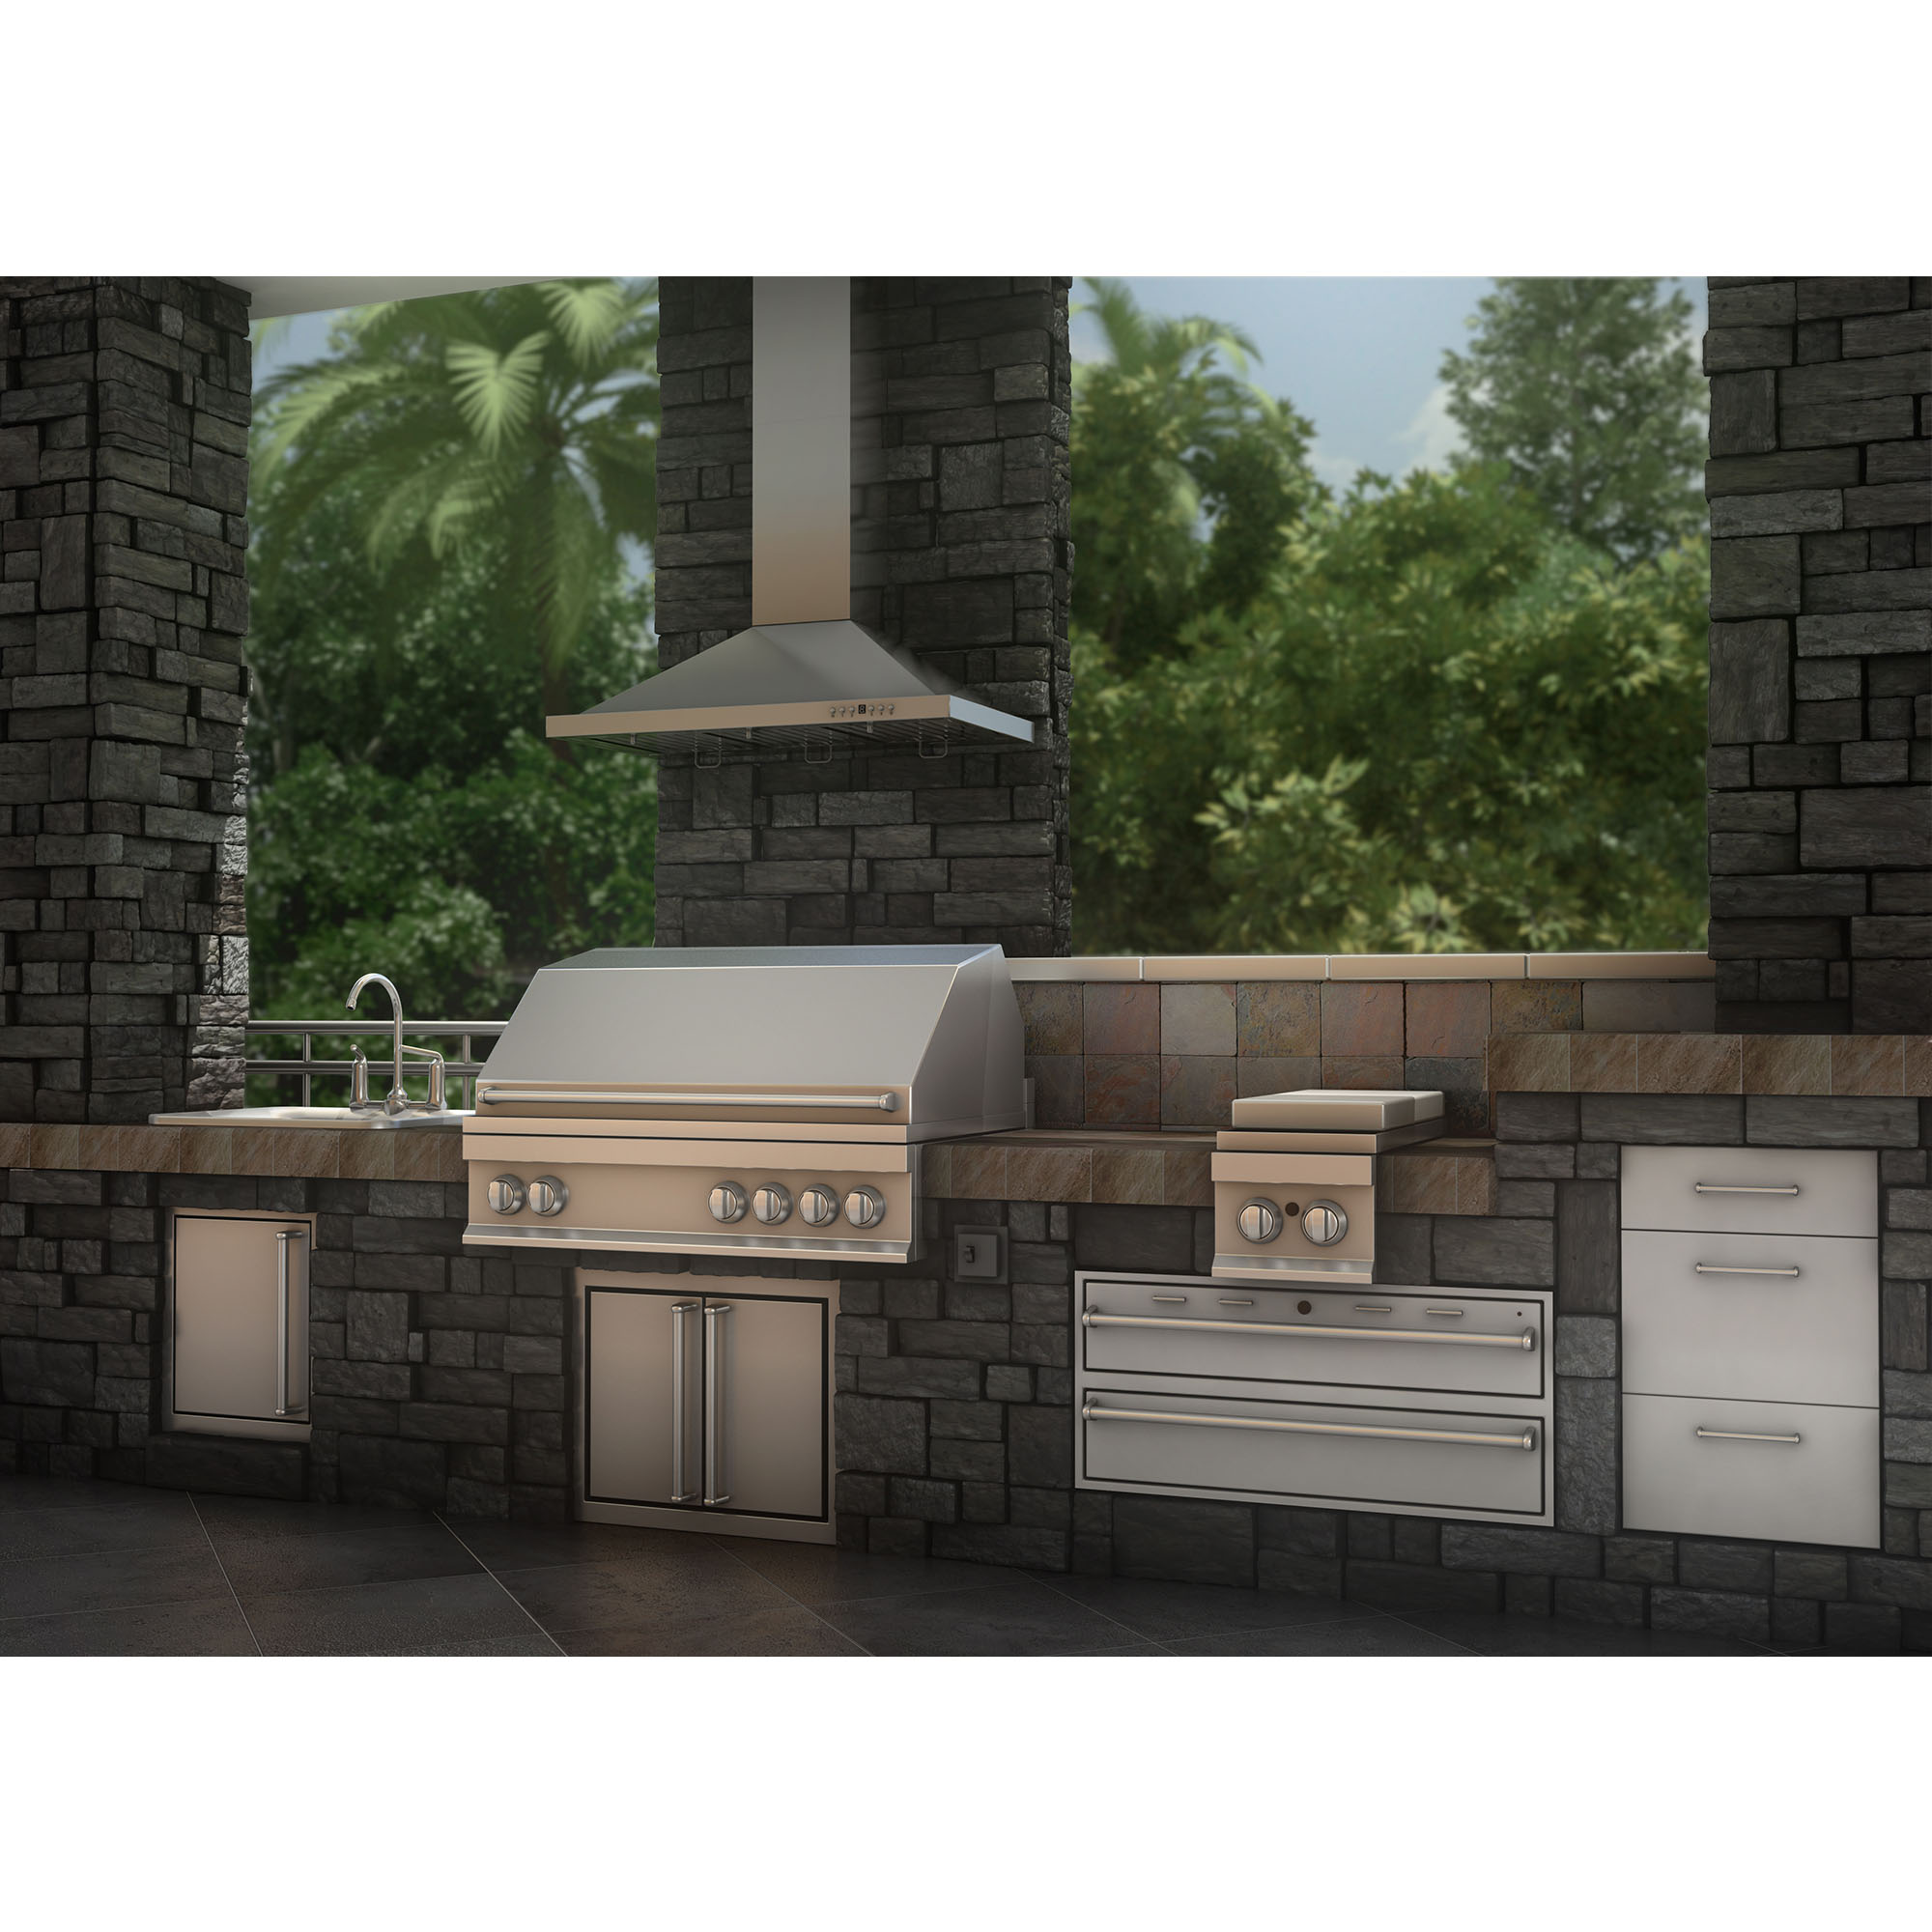 KB_New_Outdoor_Kitchen_Wall_Hoods_Cam_01.jpg